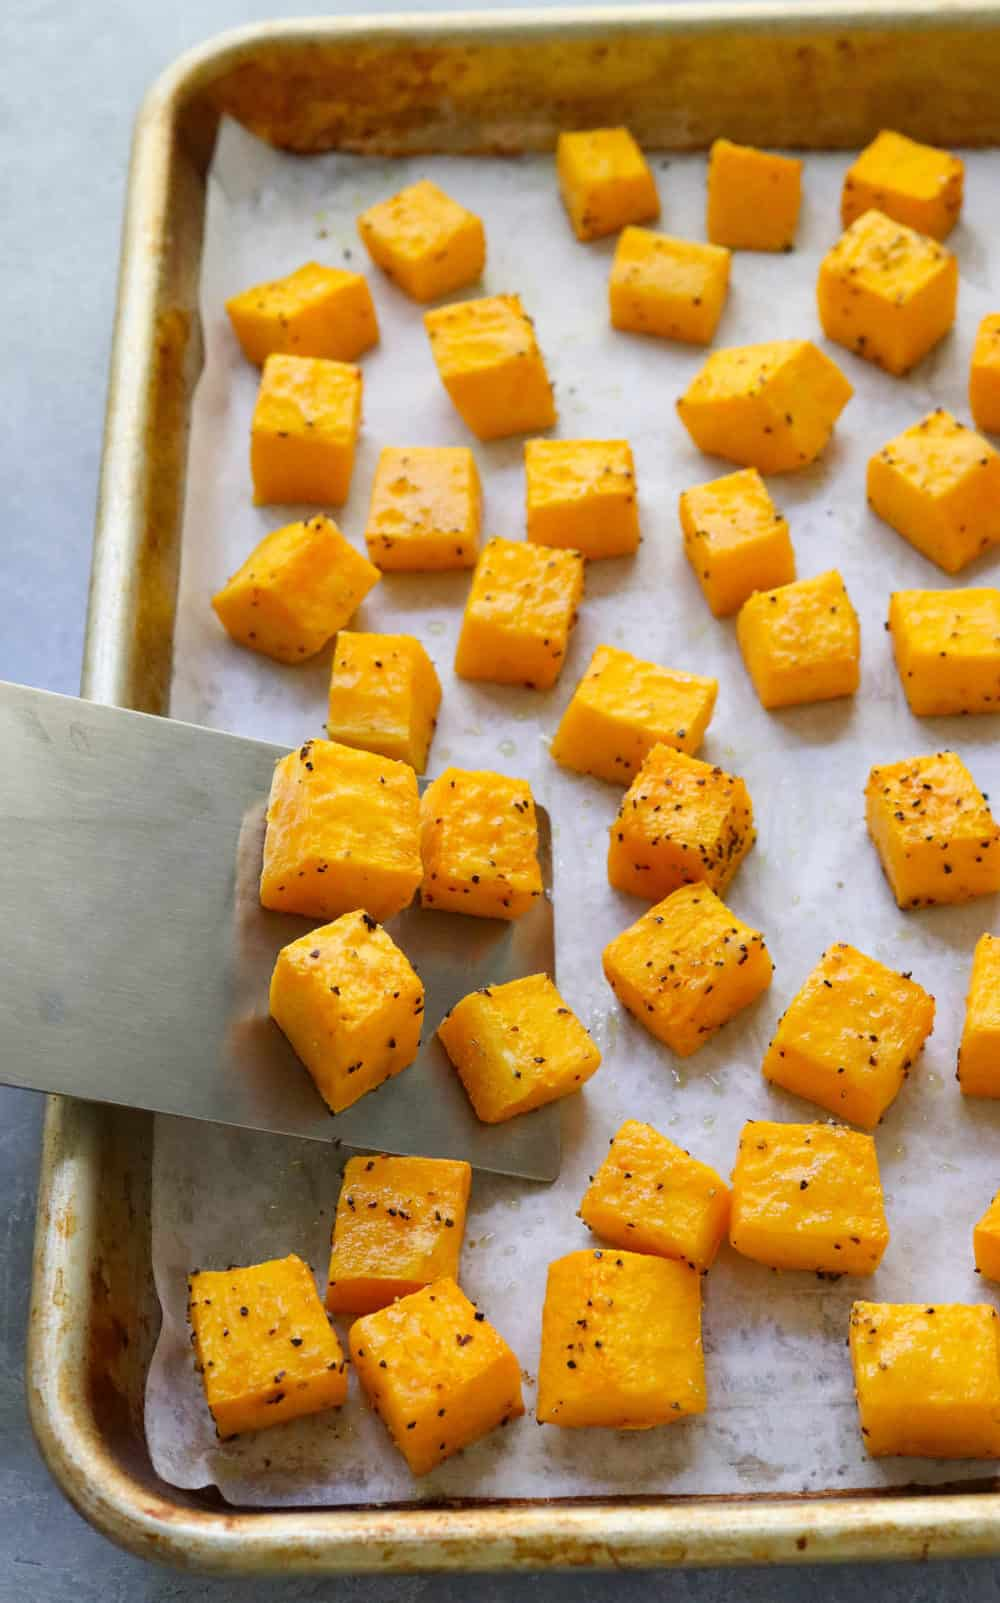 cubed butternut squash on a pan with a spatula picking up the squash